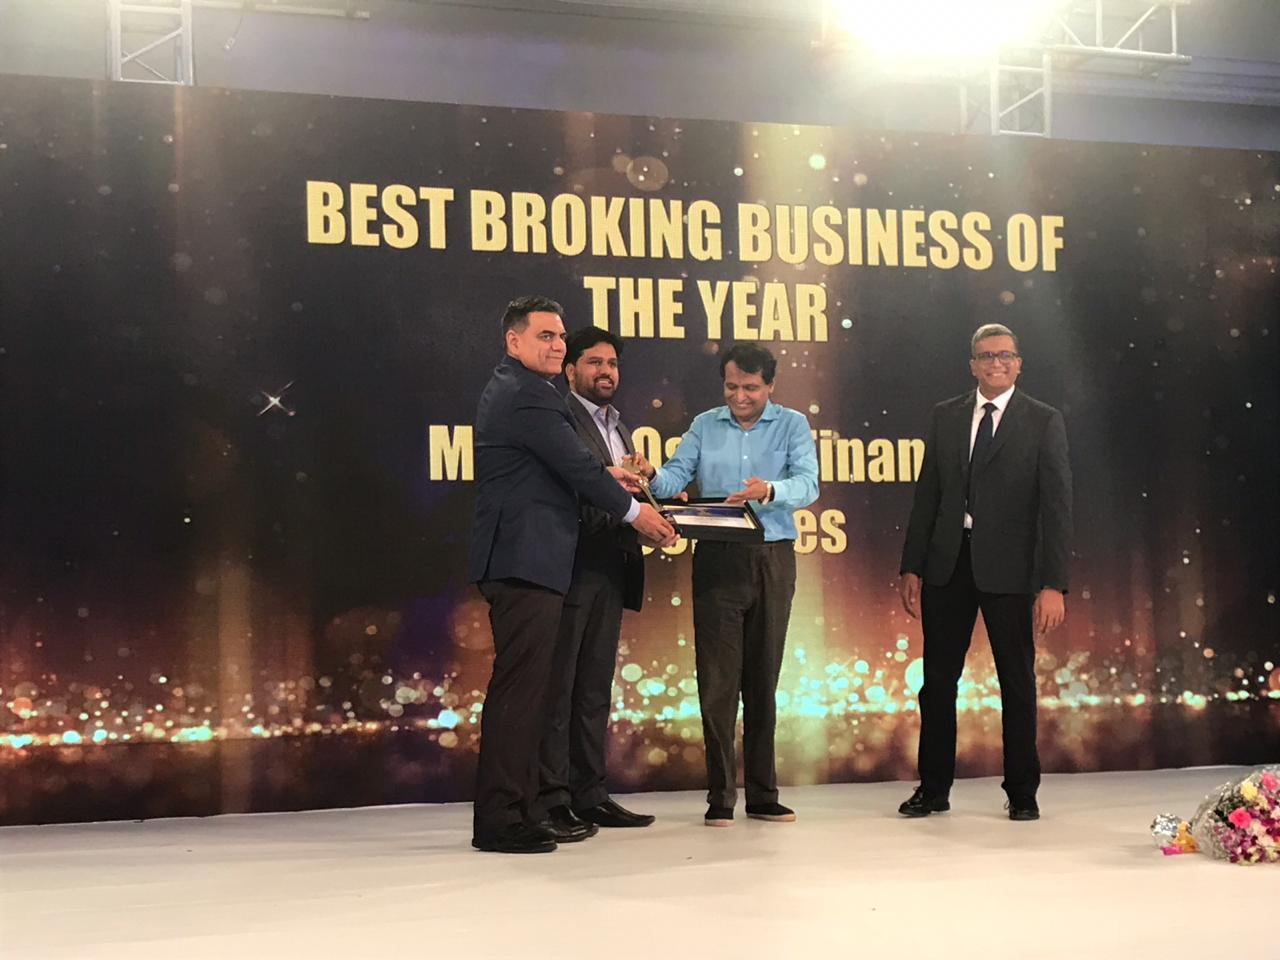 Best broking business of the year: Motilal Oswal Financial Services | The company was founded in 1987 as a small sub-broking unit by two visionaries Motilal Oswal and Raamdeo Agarawal. It has diversified to offer a range of financial products and services such as private wealth management, retail broking and currency broking. Motilal ended FY18 with its highest-ever revenue and profit of Rs 2770 crore and Rs 562 crore respectively. (Image: Moneycontrol)